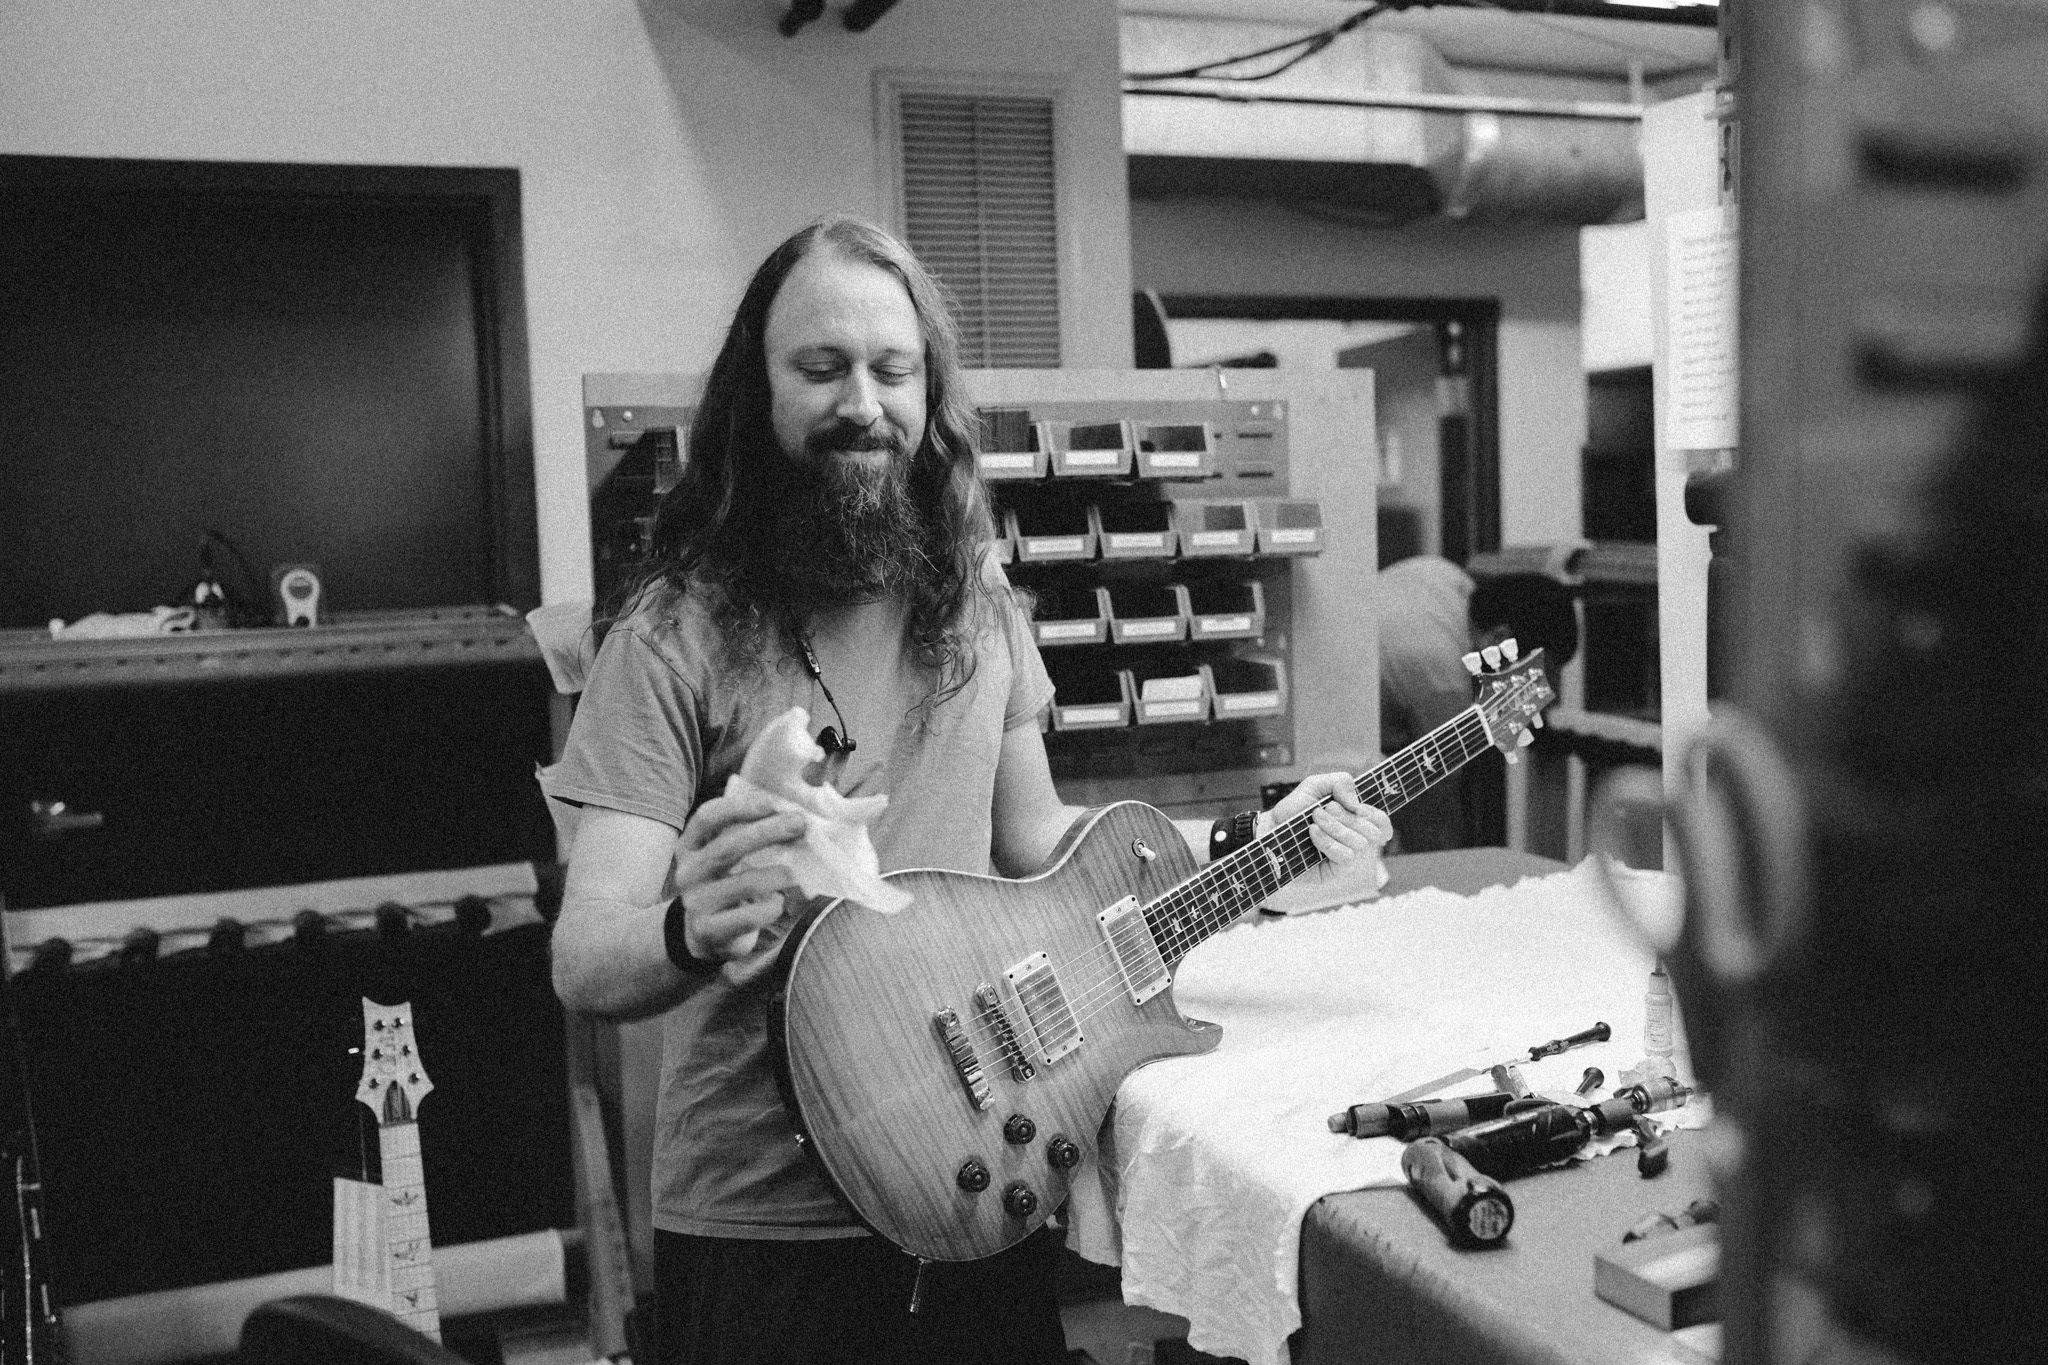 PRS employee enjoys a donut while next to a guitar